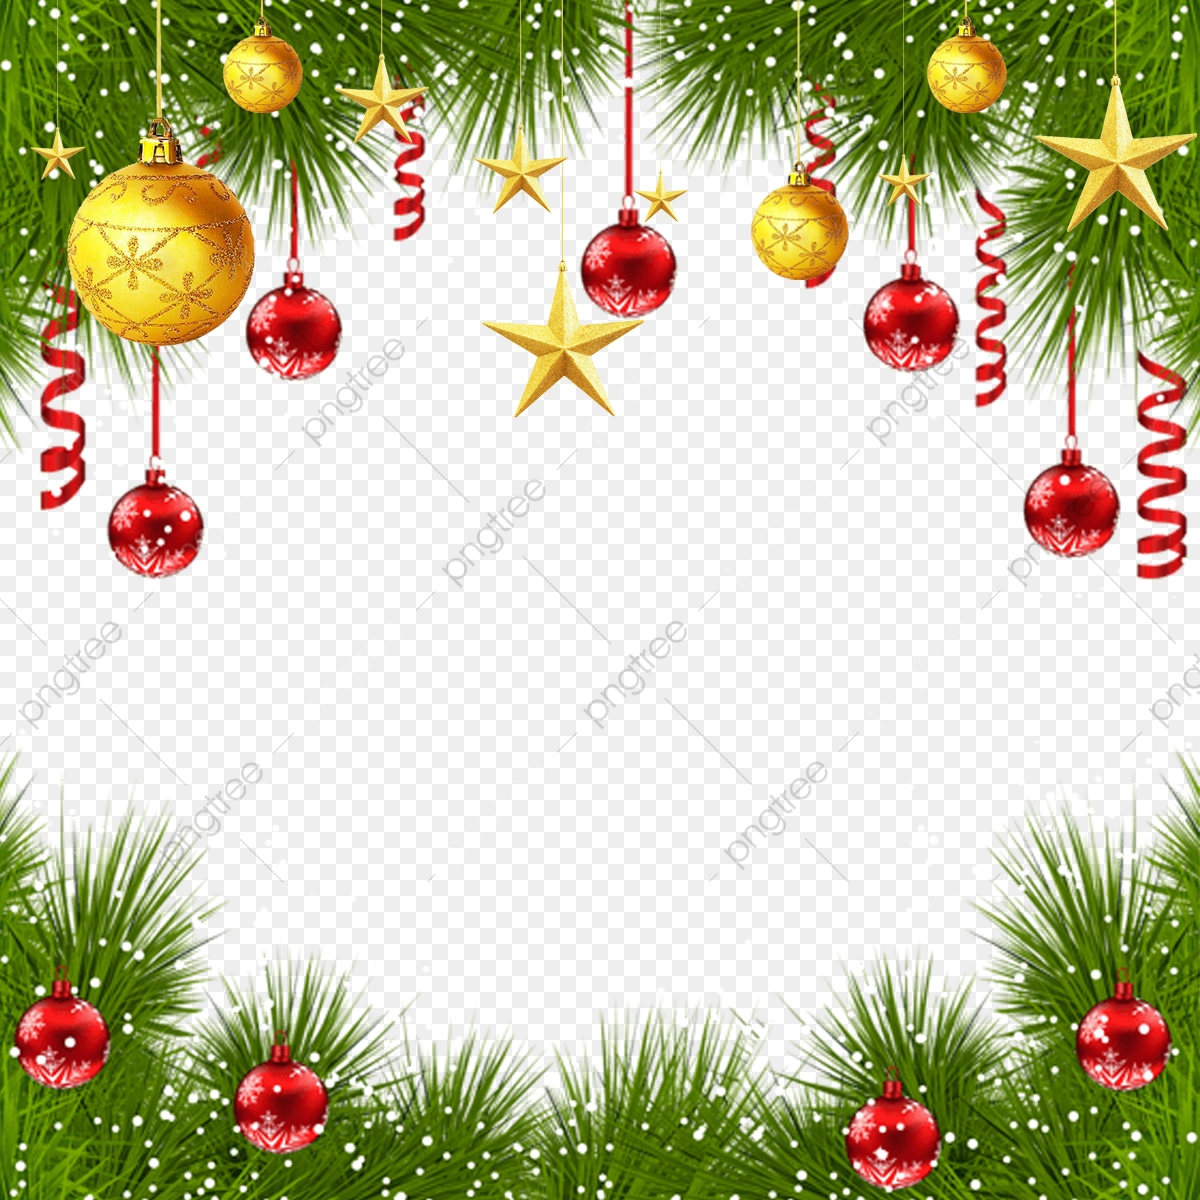 Christmas Backgrounds Png.Christmas Graphic Christmas Vector Christmas Christmas Stars